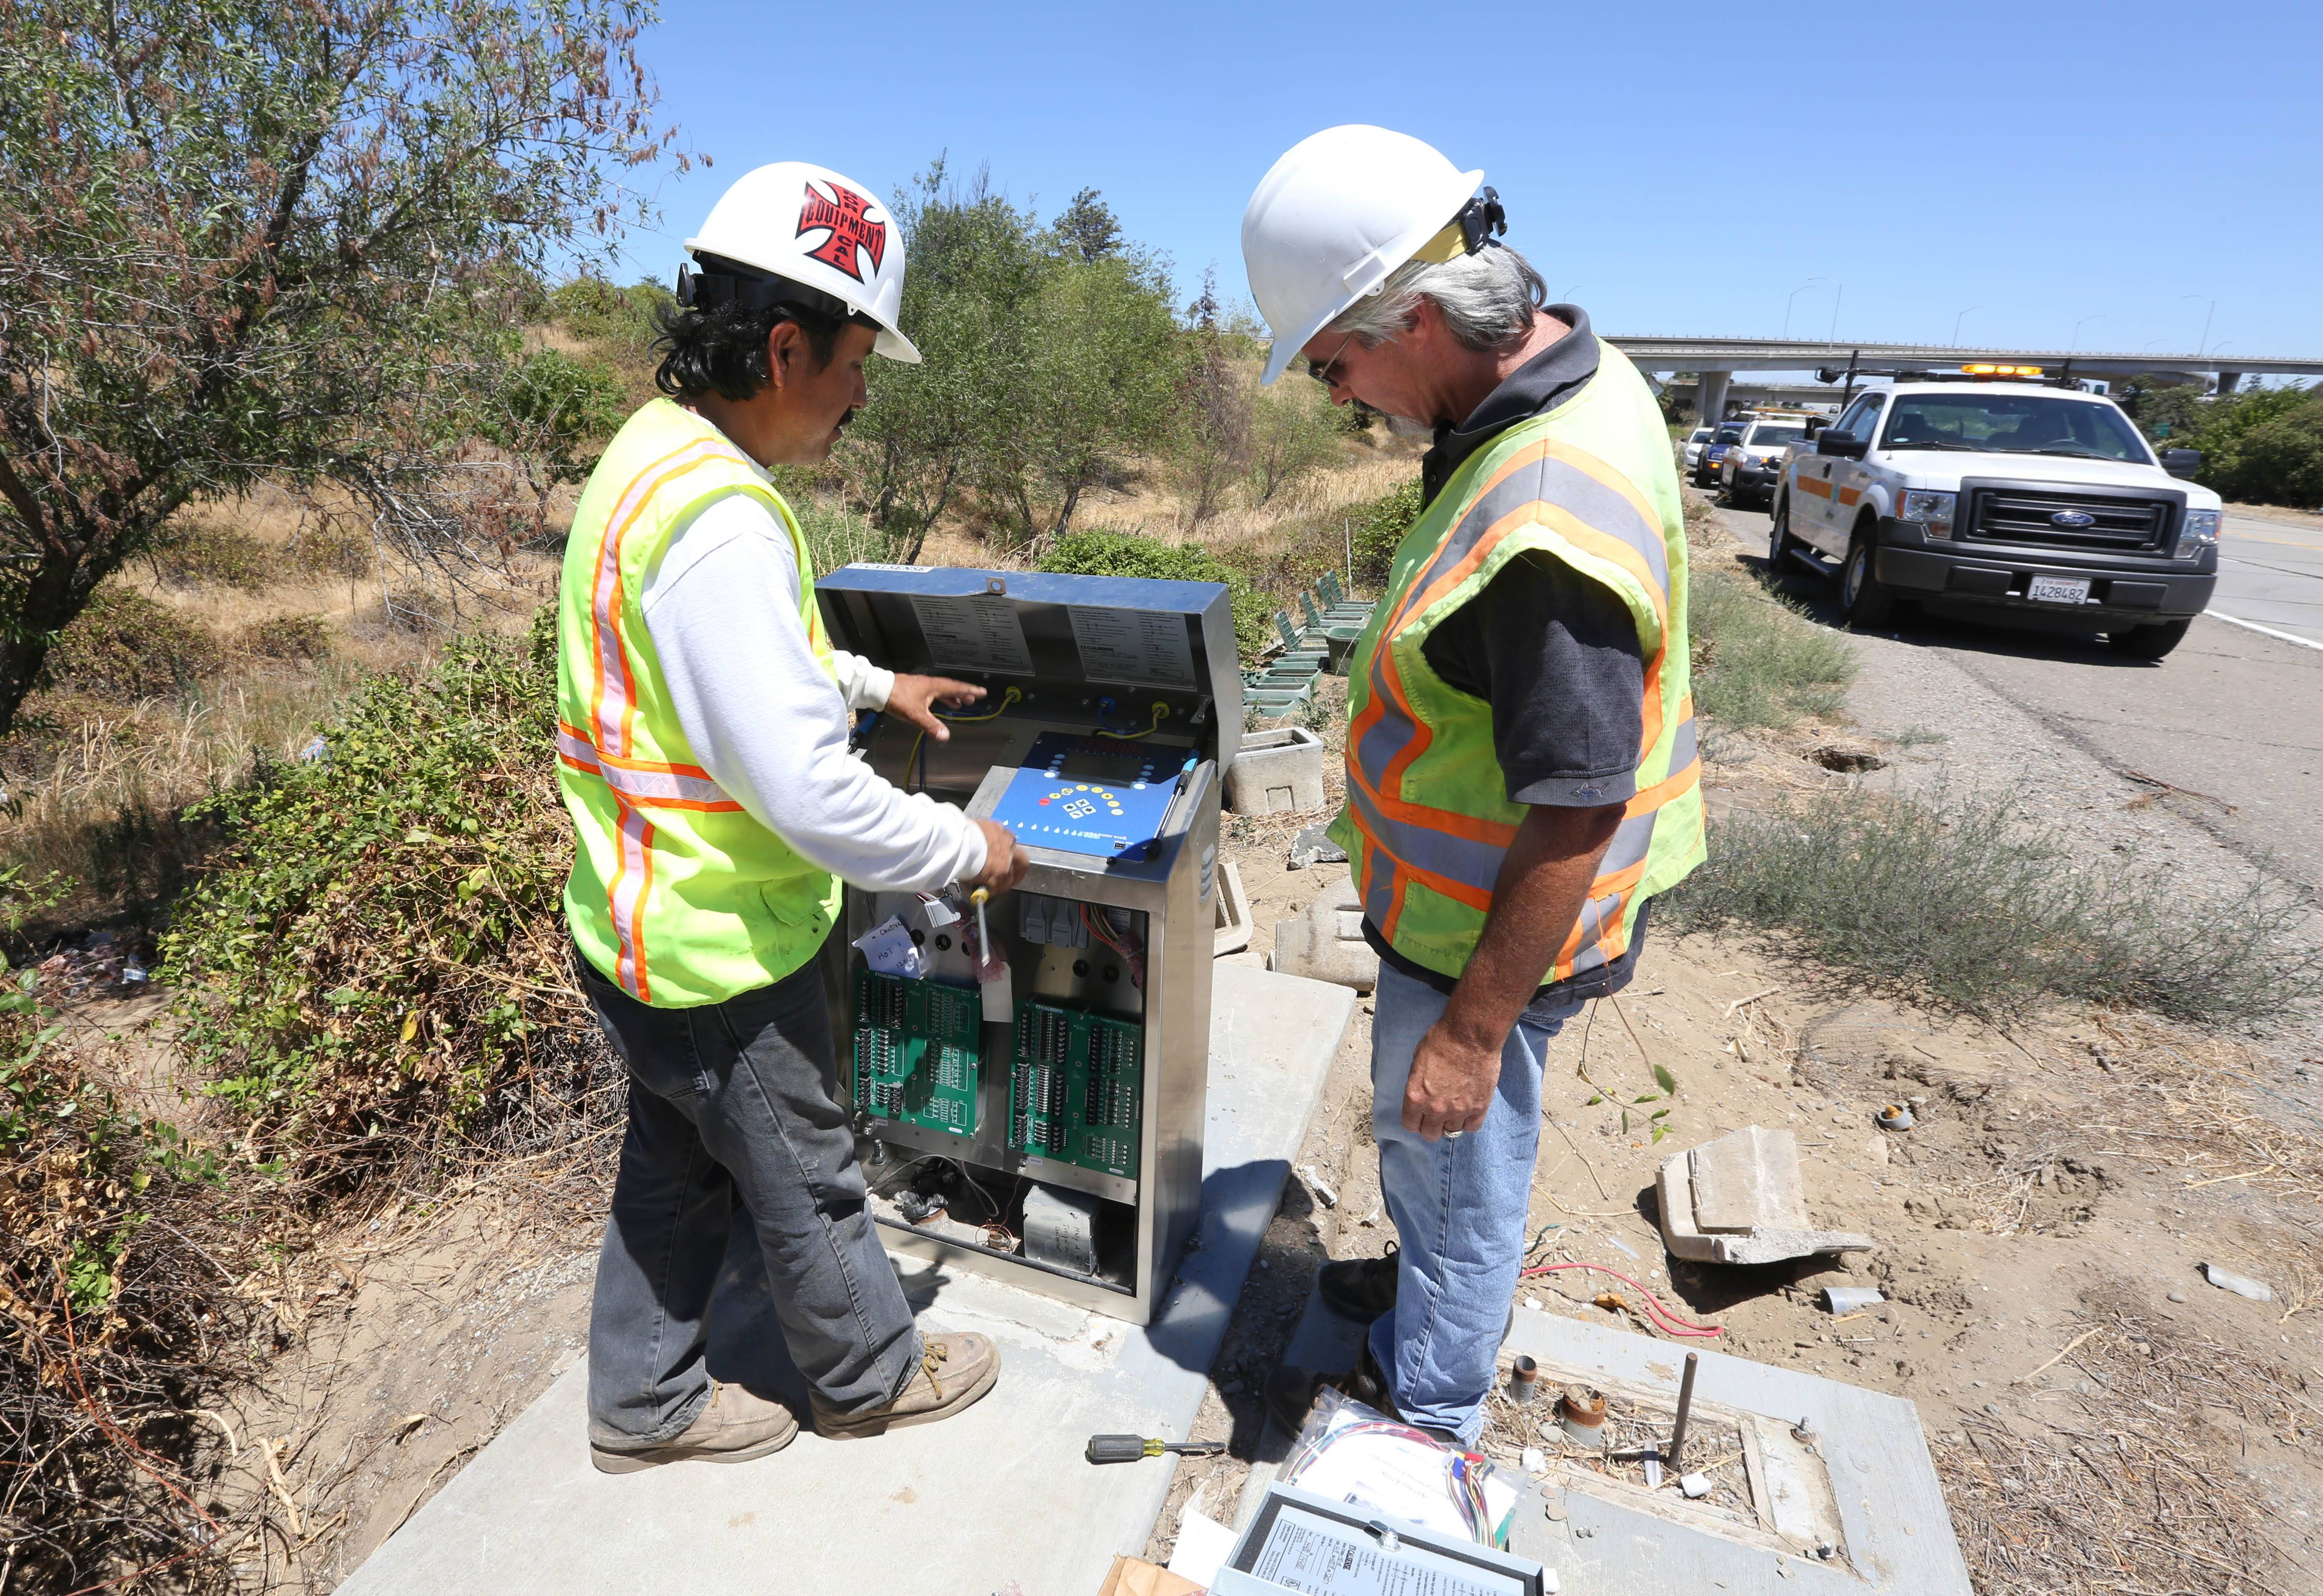 Russ Lake, a field inspector for the California Department of Transportation, right, looks over a remote water management controller just installed by Lionel Flores along Highway 4 in Stockton, Calif. From these control units, Caltrans can monitor water flow from a central office looking for excessive water usage caused by leaks or breaks in the system.